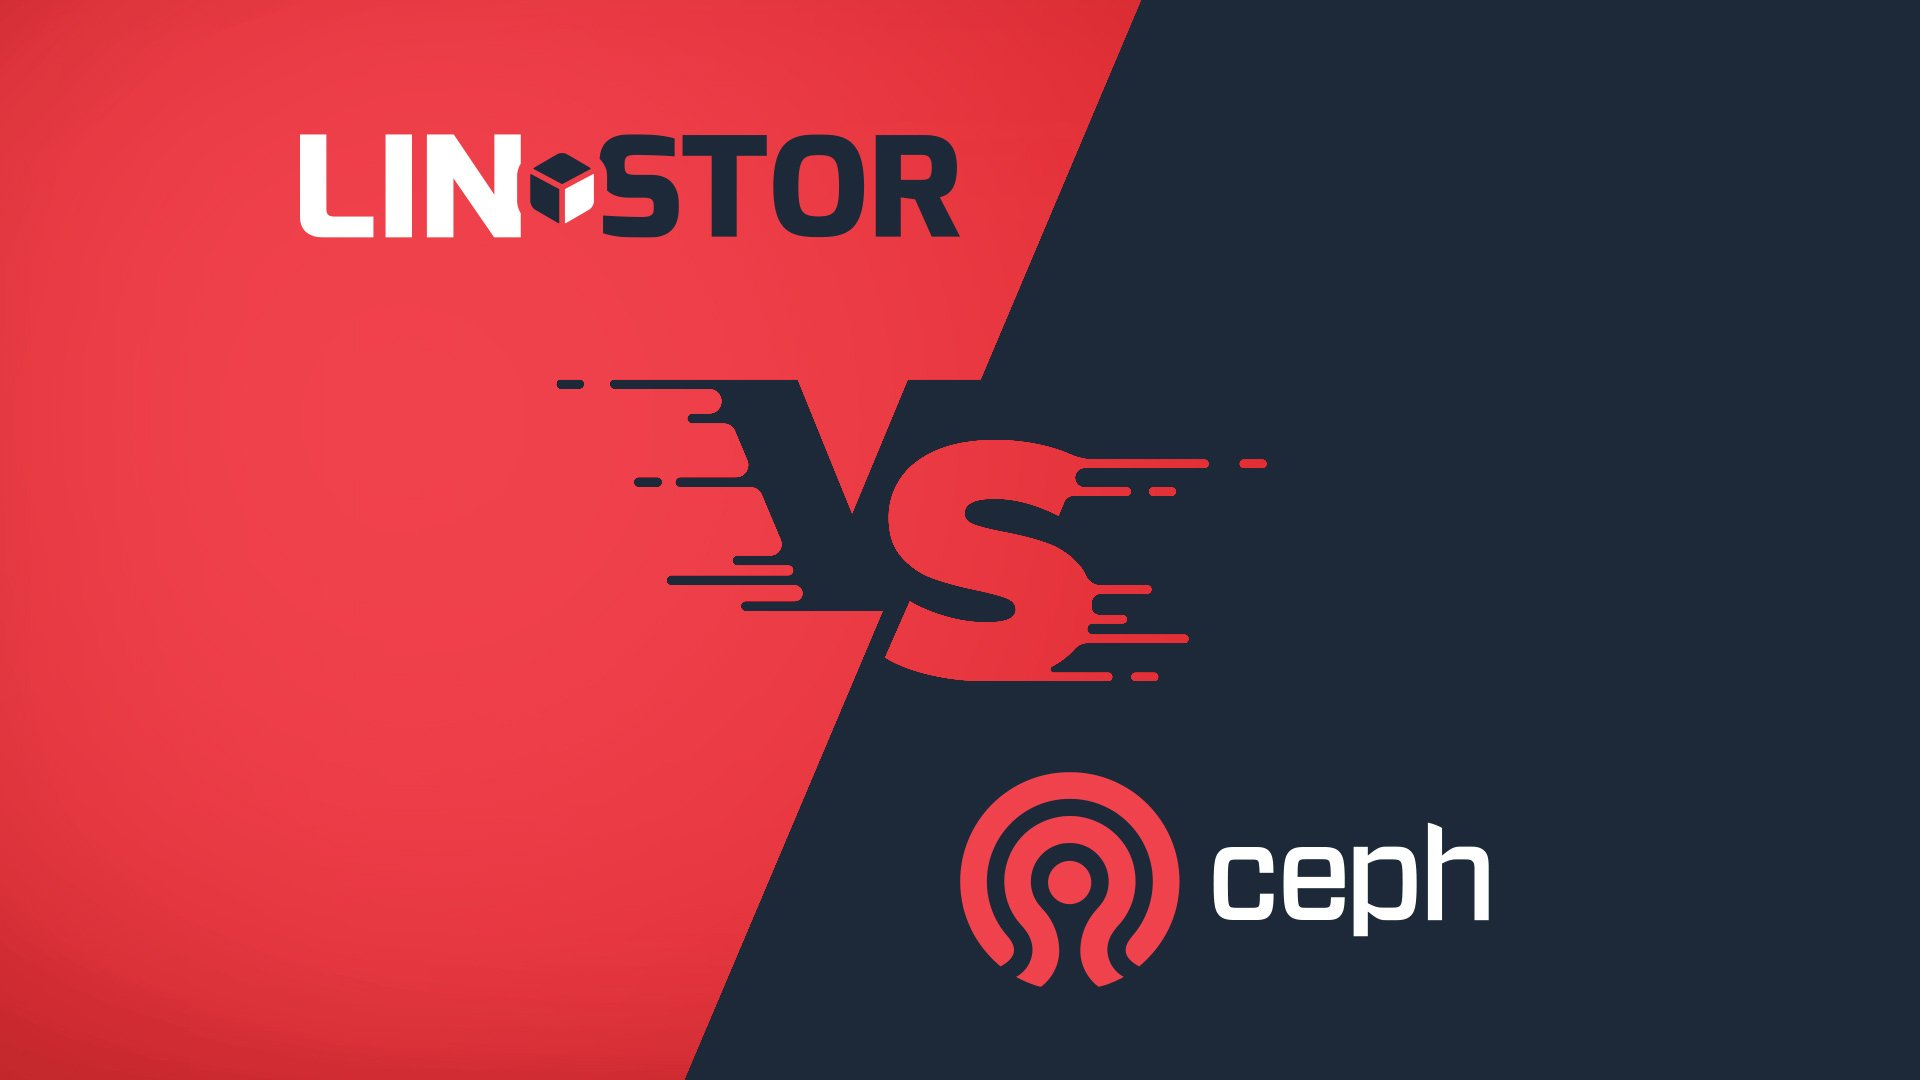 linstor vs ceph logos in black and red background